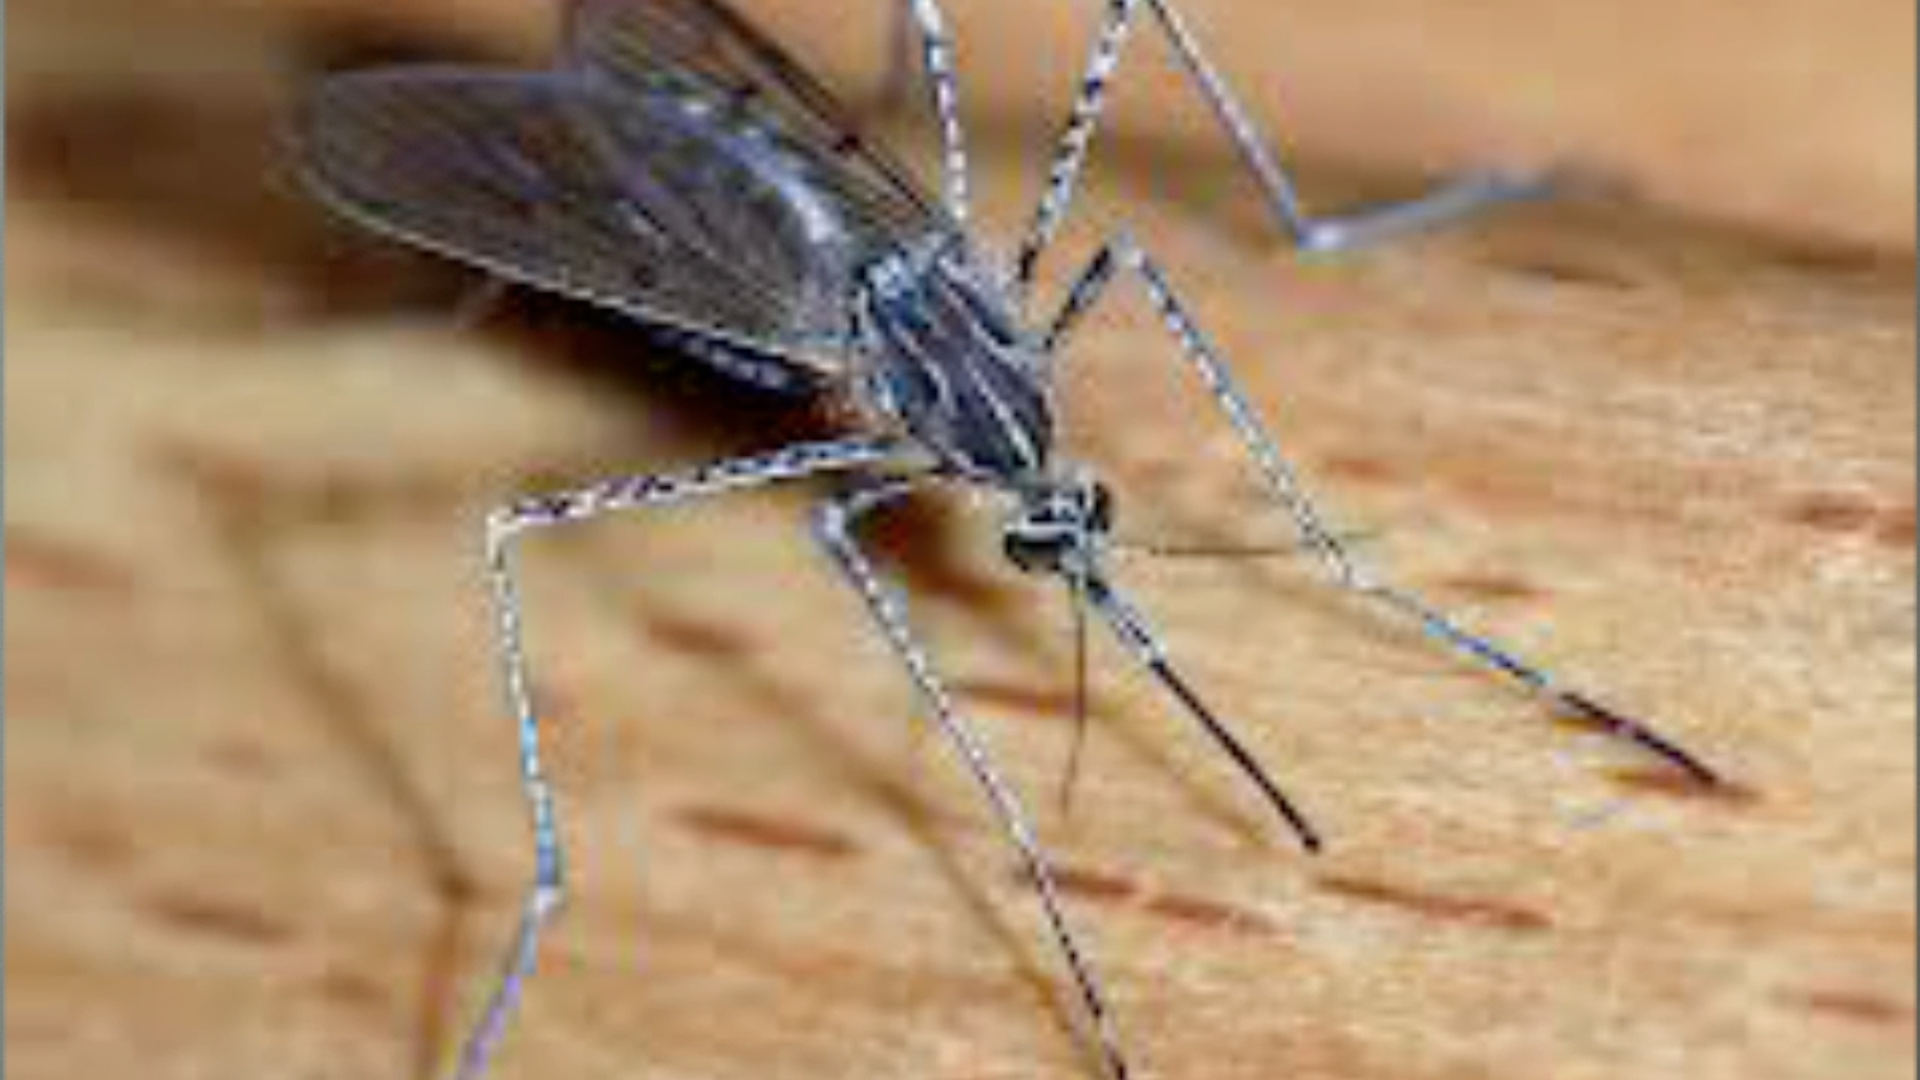 Mosquitoes: Youth Segment